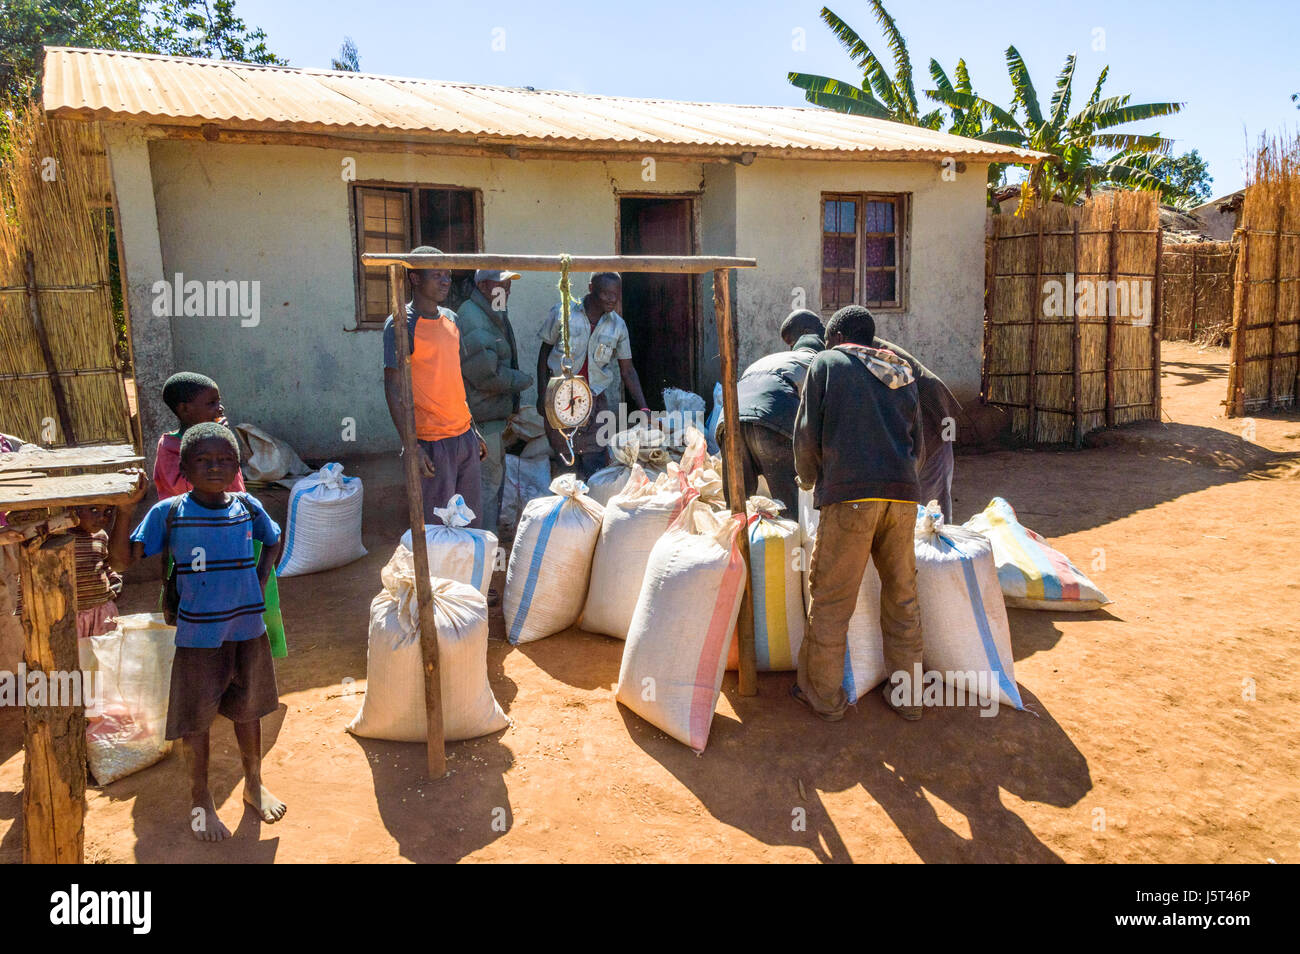 Men stack sacks of maize in front of shop before weighing them for sale in a rural village in Malawi, Africa - Stock Image